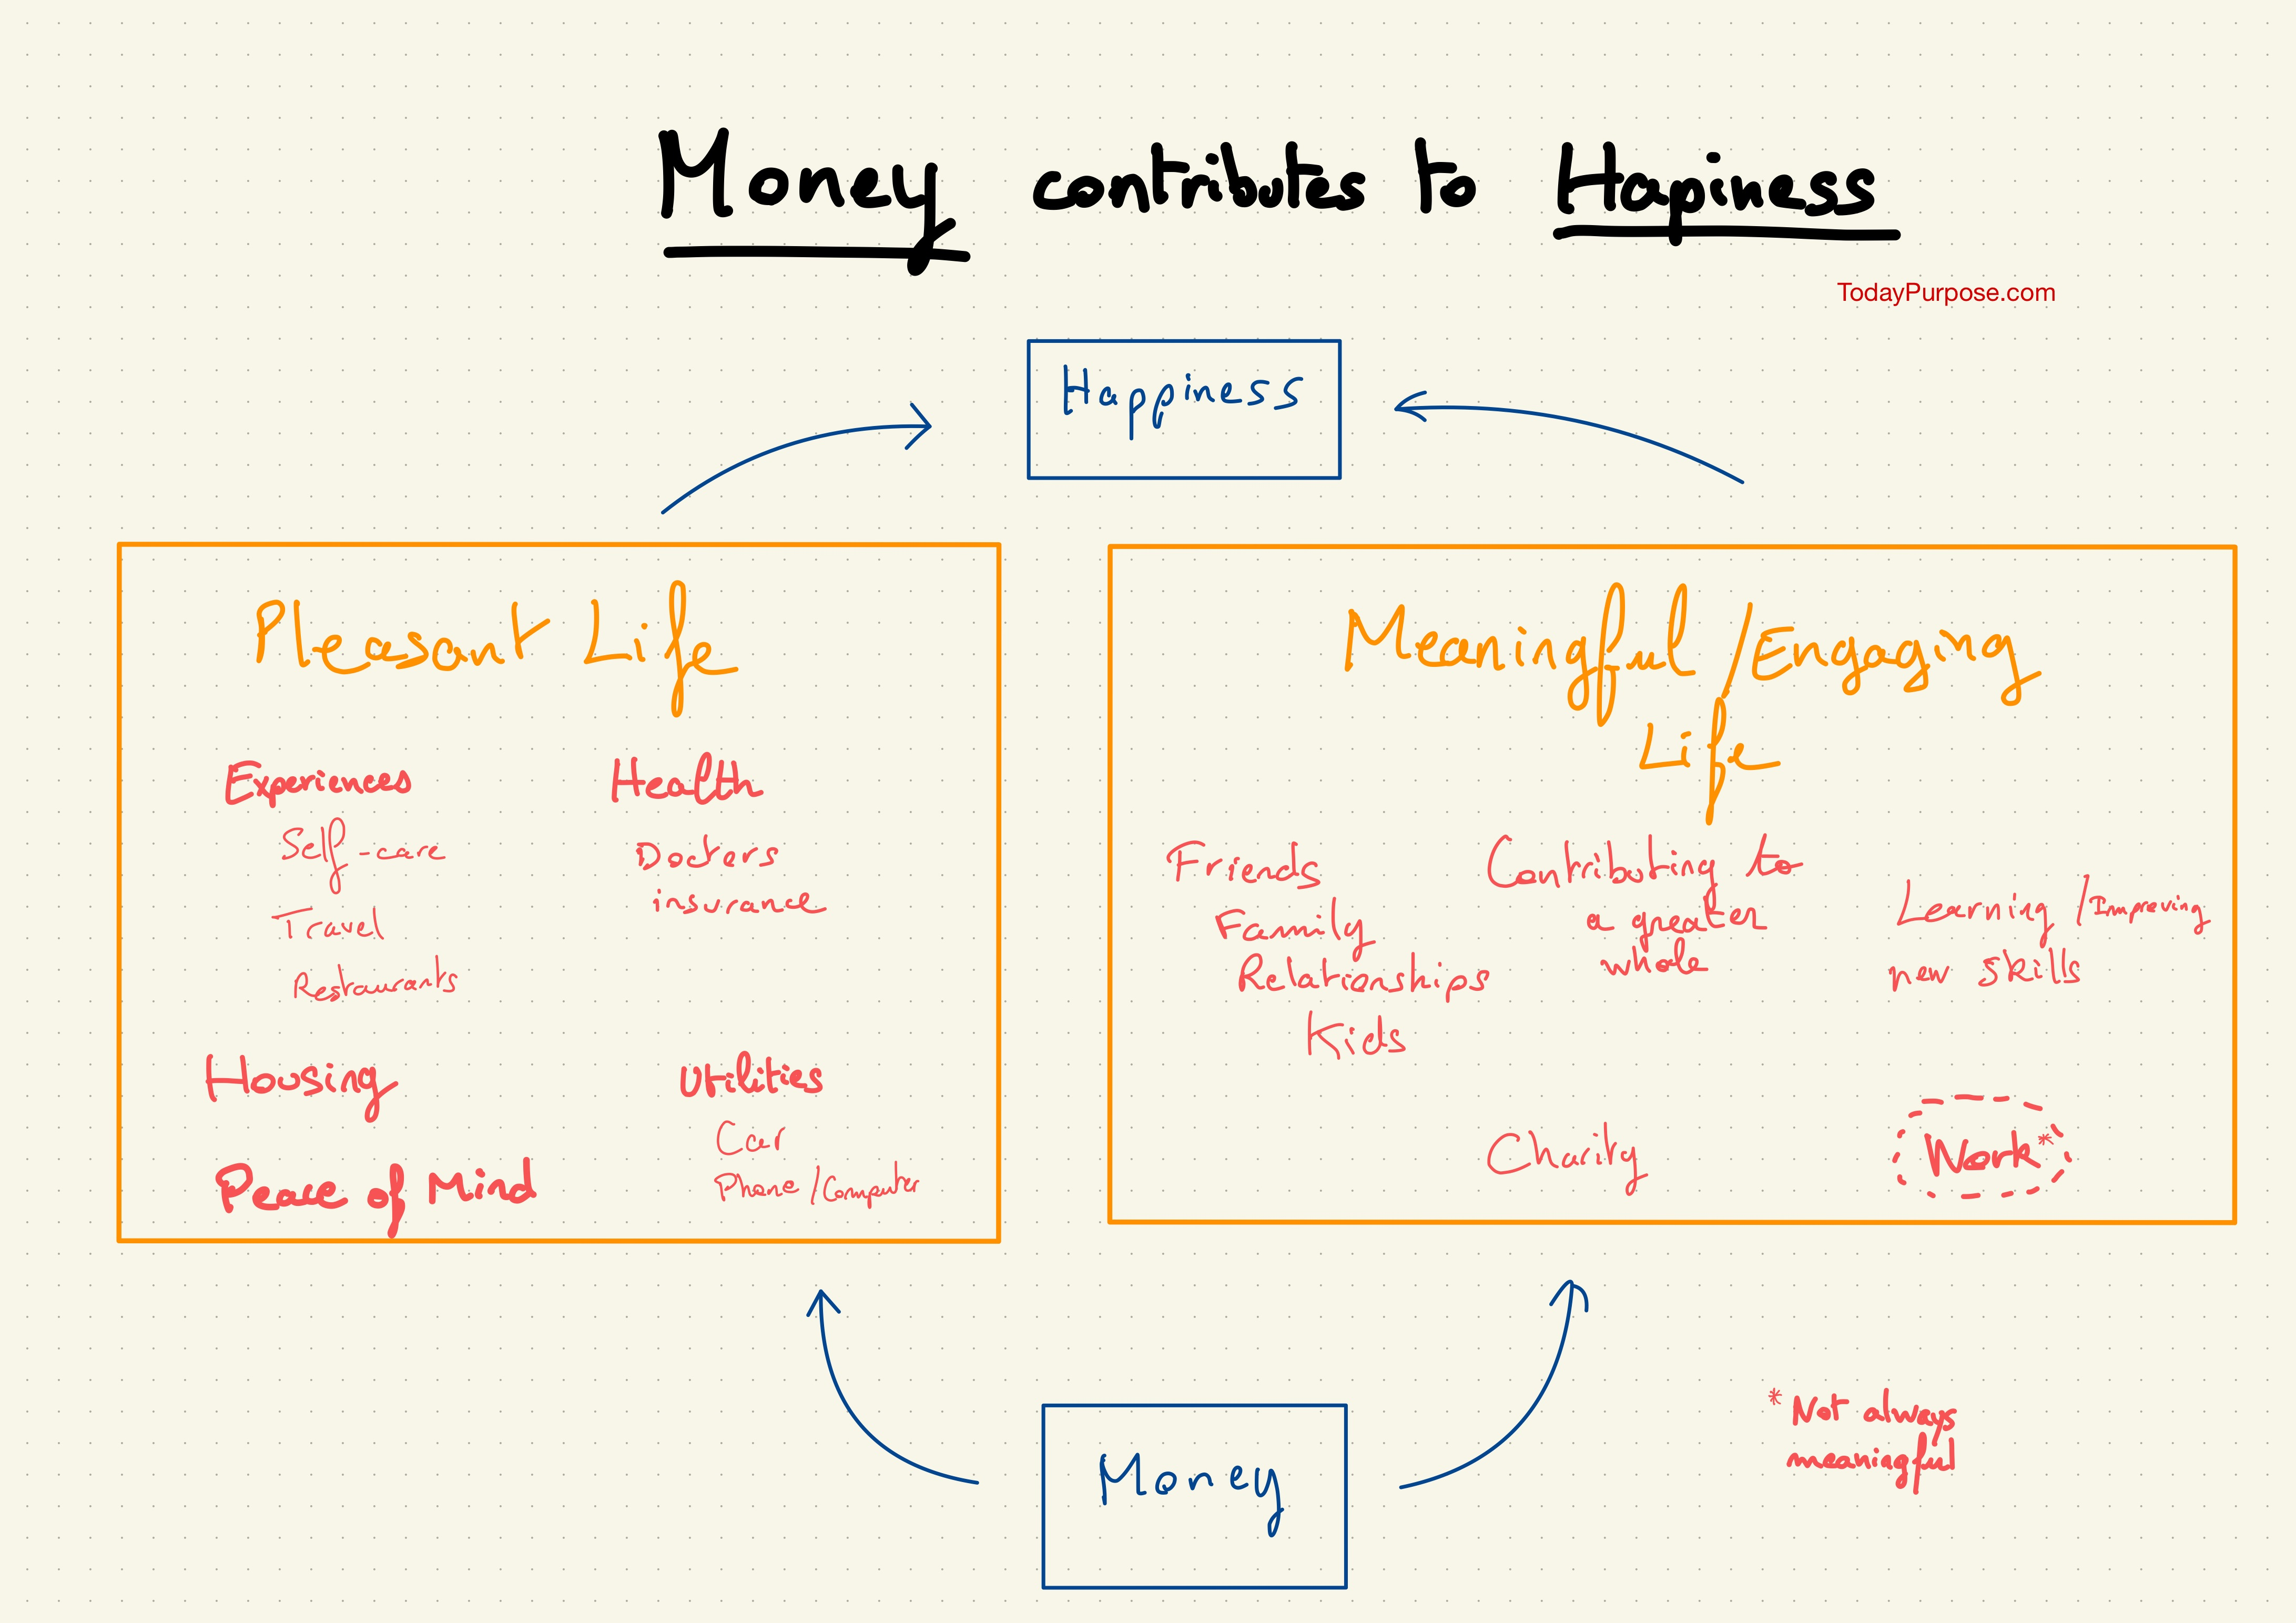 Money contributes to happiness